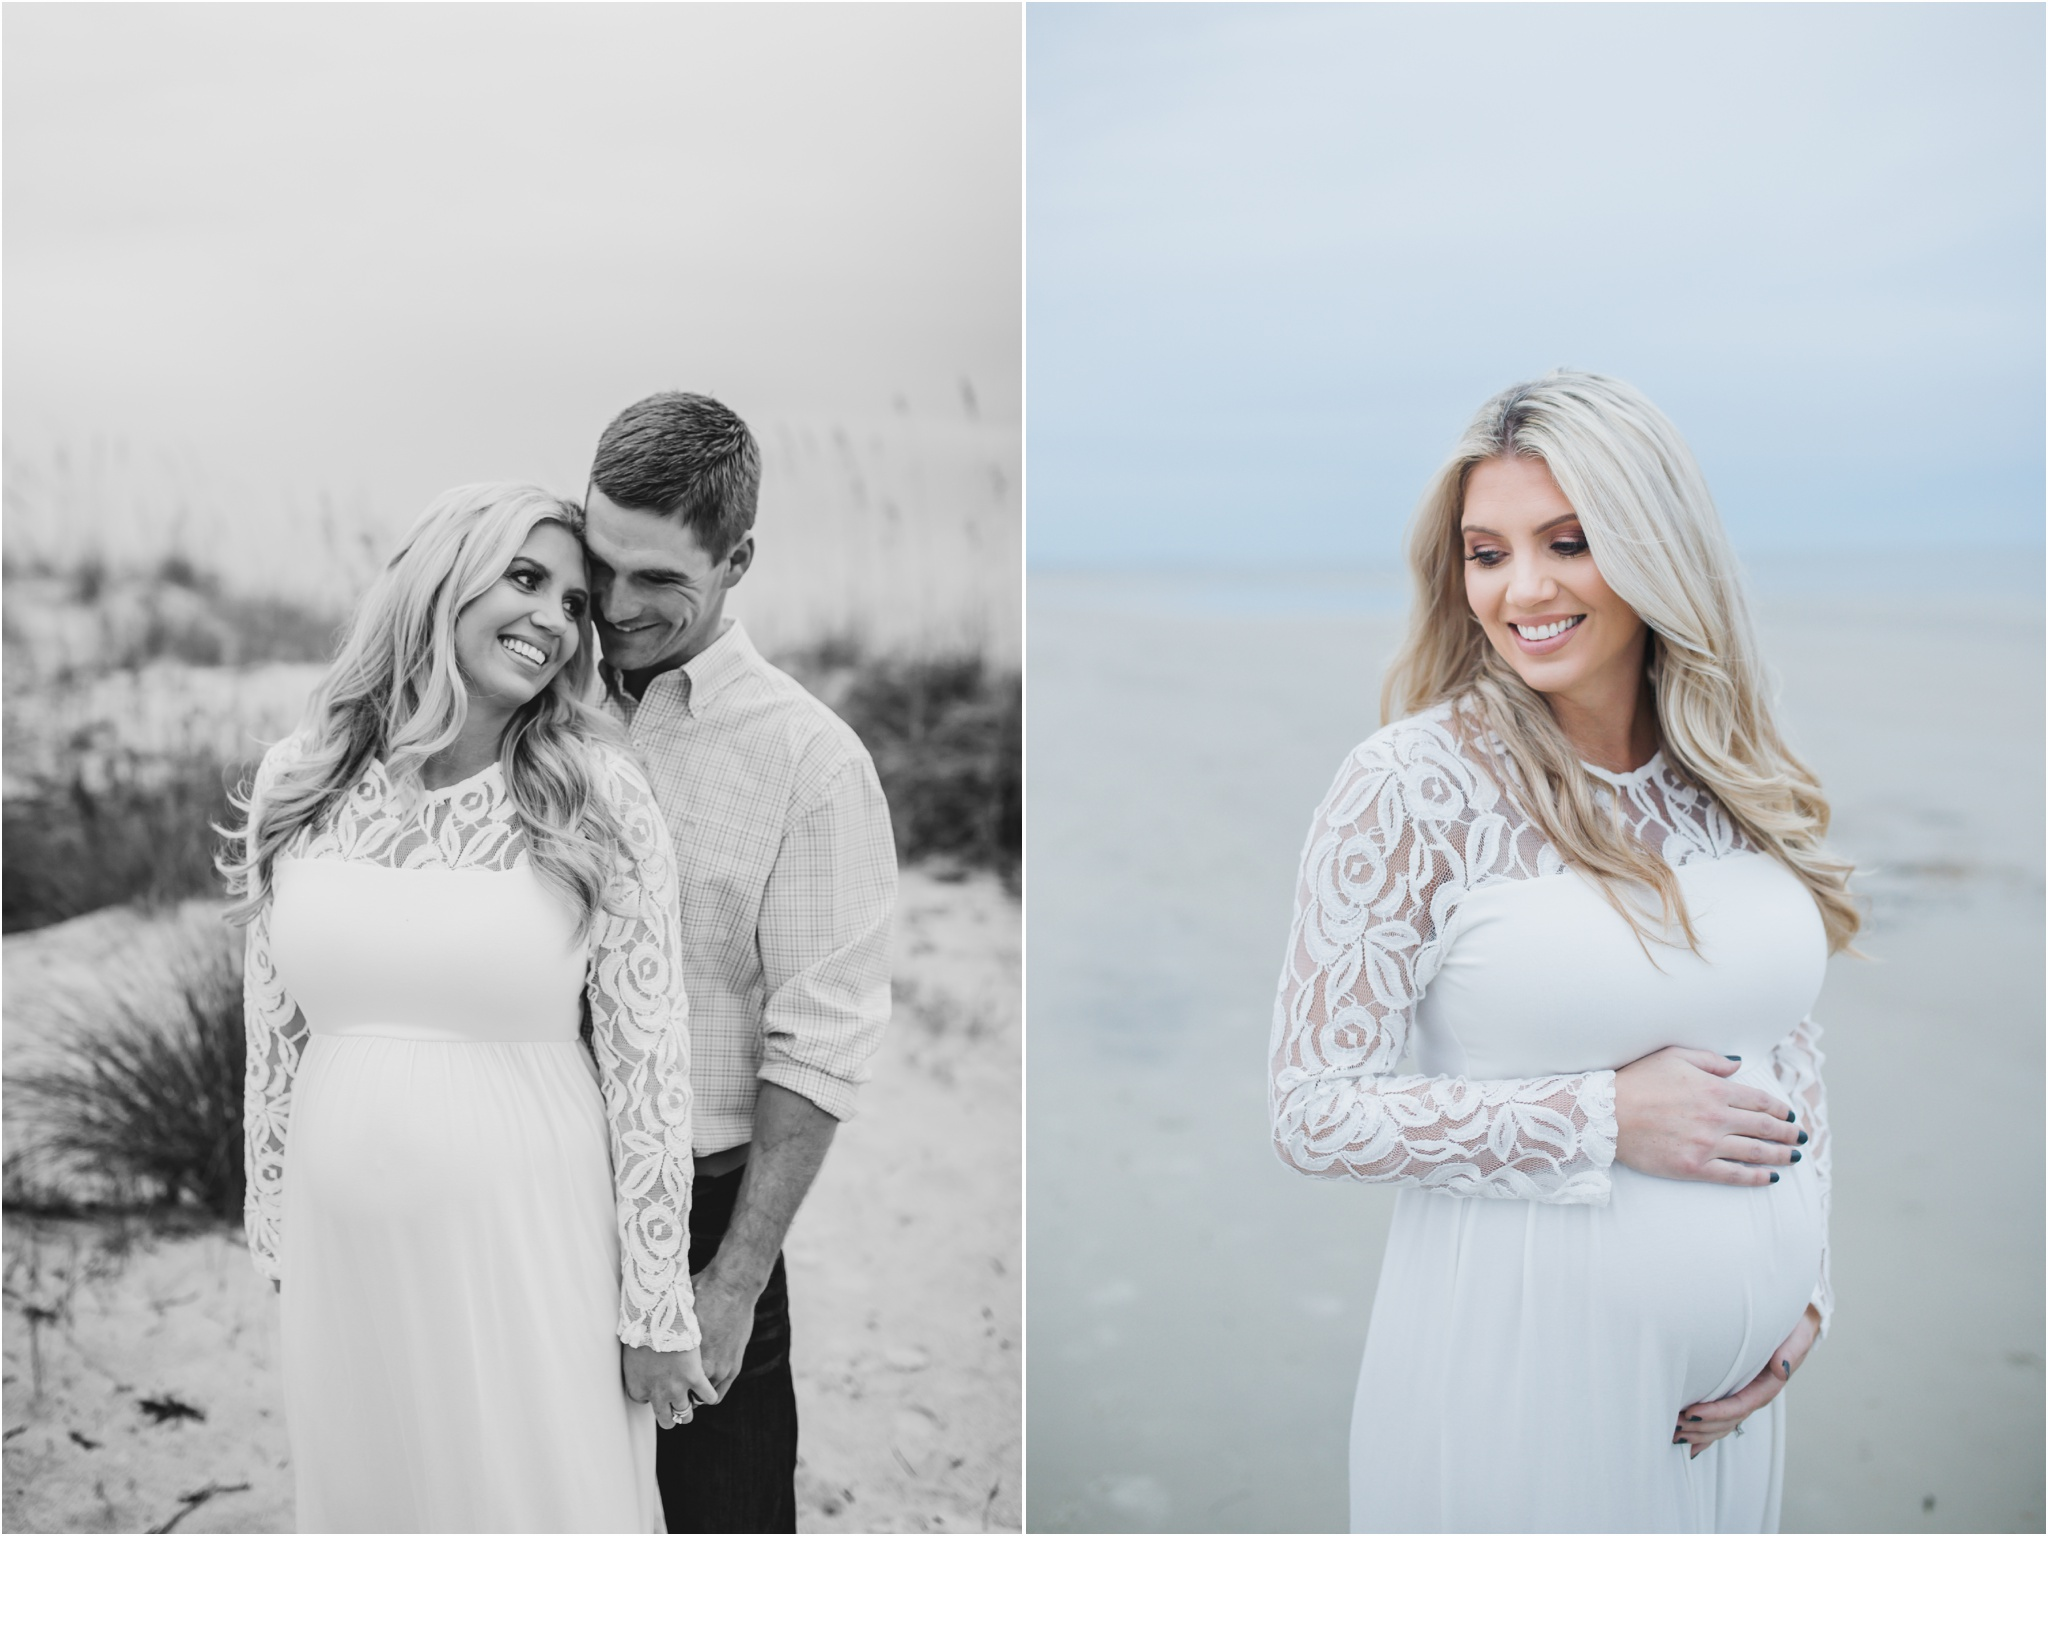 Rainey_Gregg_Photography_St._Simons_Island_Georgia_California_Wedding_Portrait_Photography_1472.jpg